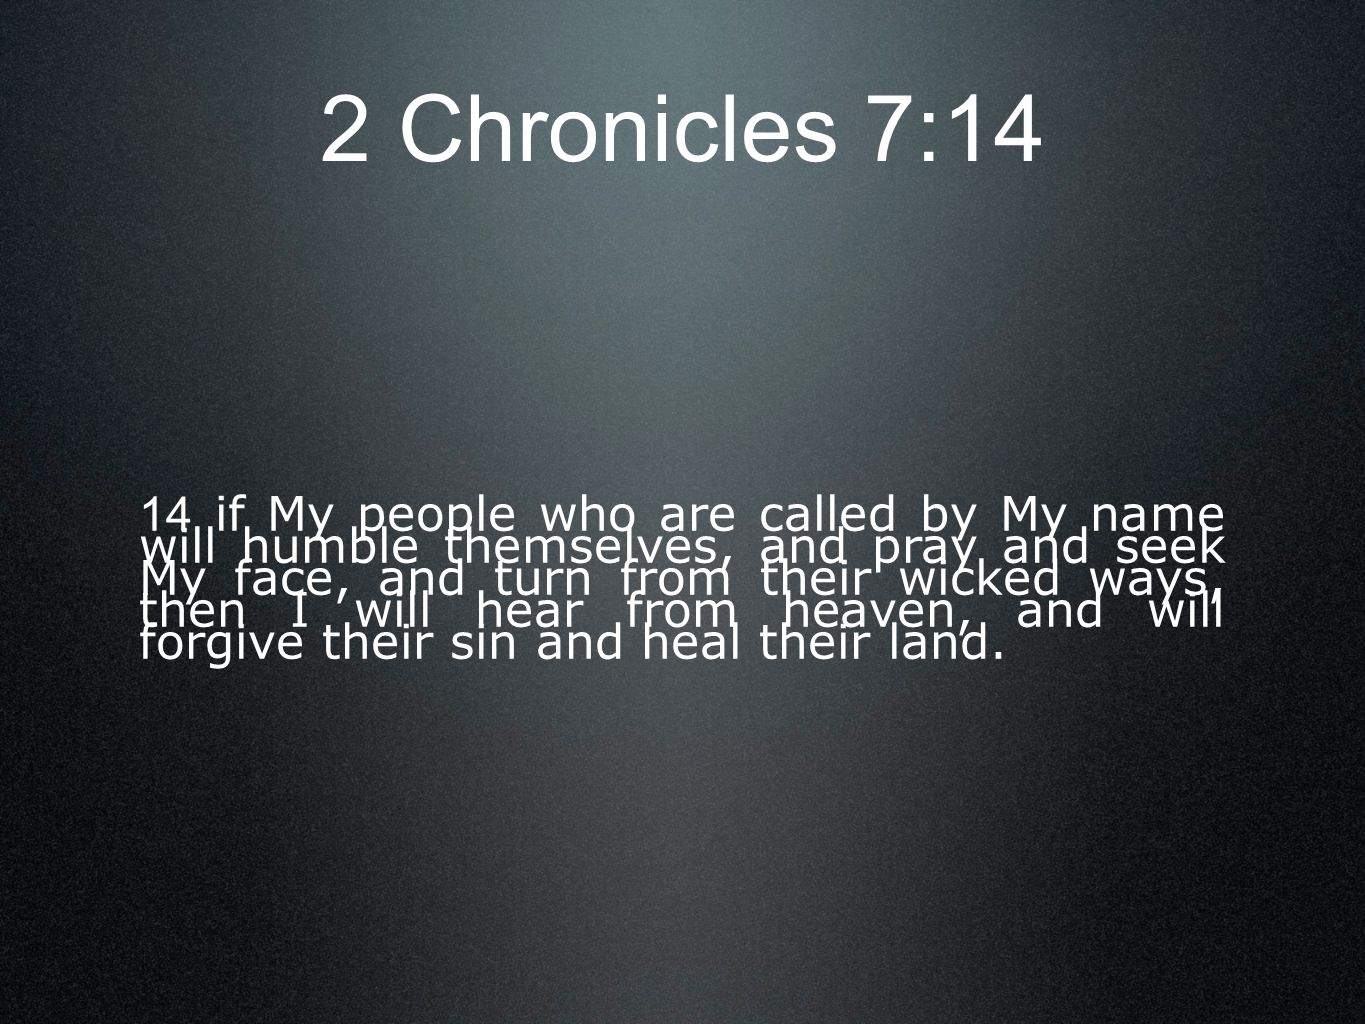 2 Chronicles 7:14